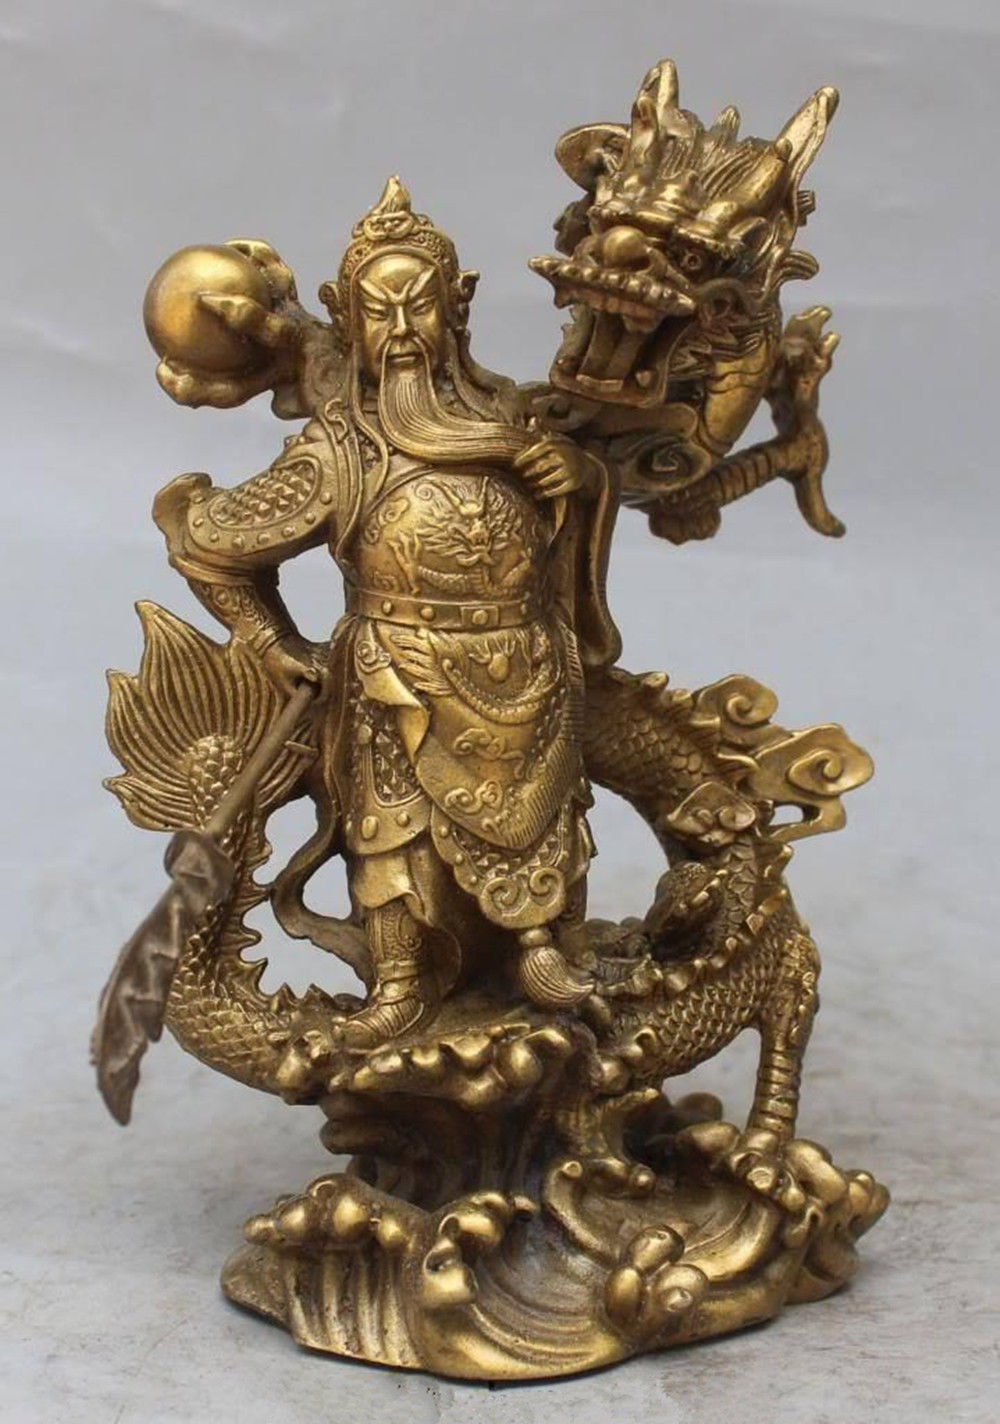 Chinese Fengshui Bronze Guan GongYu Warrior God Sword Stand in Dragon Statue Chinese Fengshui Bronze Guan GongYu Warrior God Sword Stand in Dragon Statue